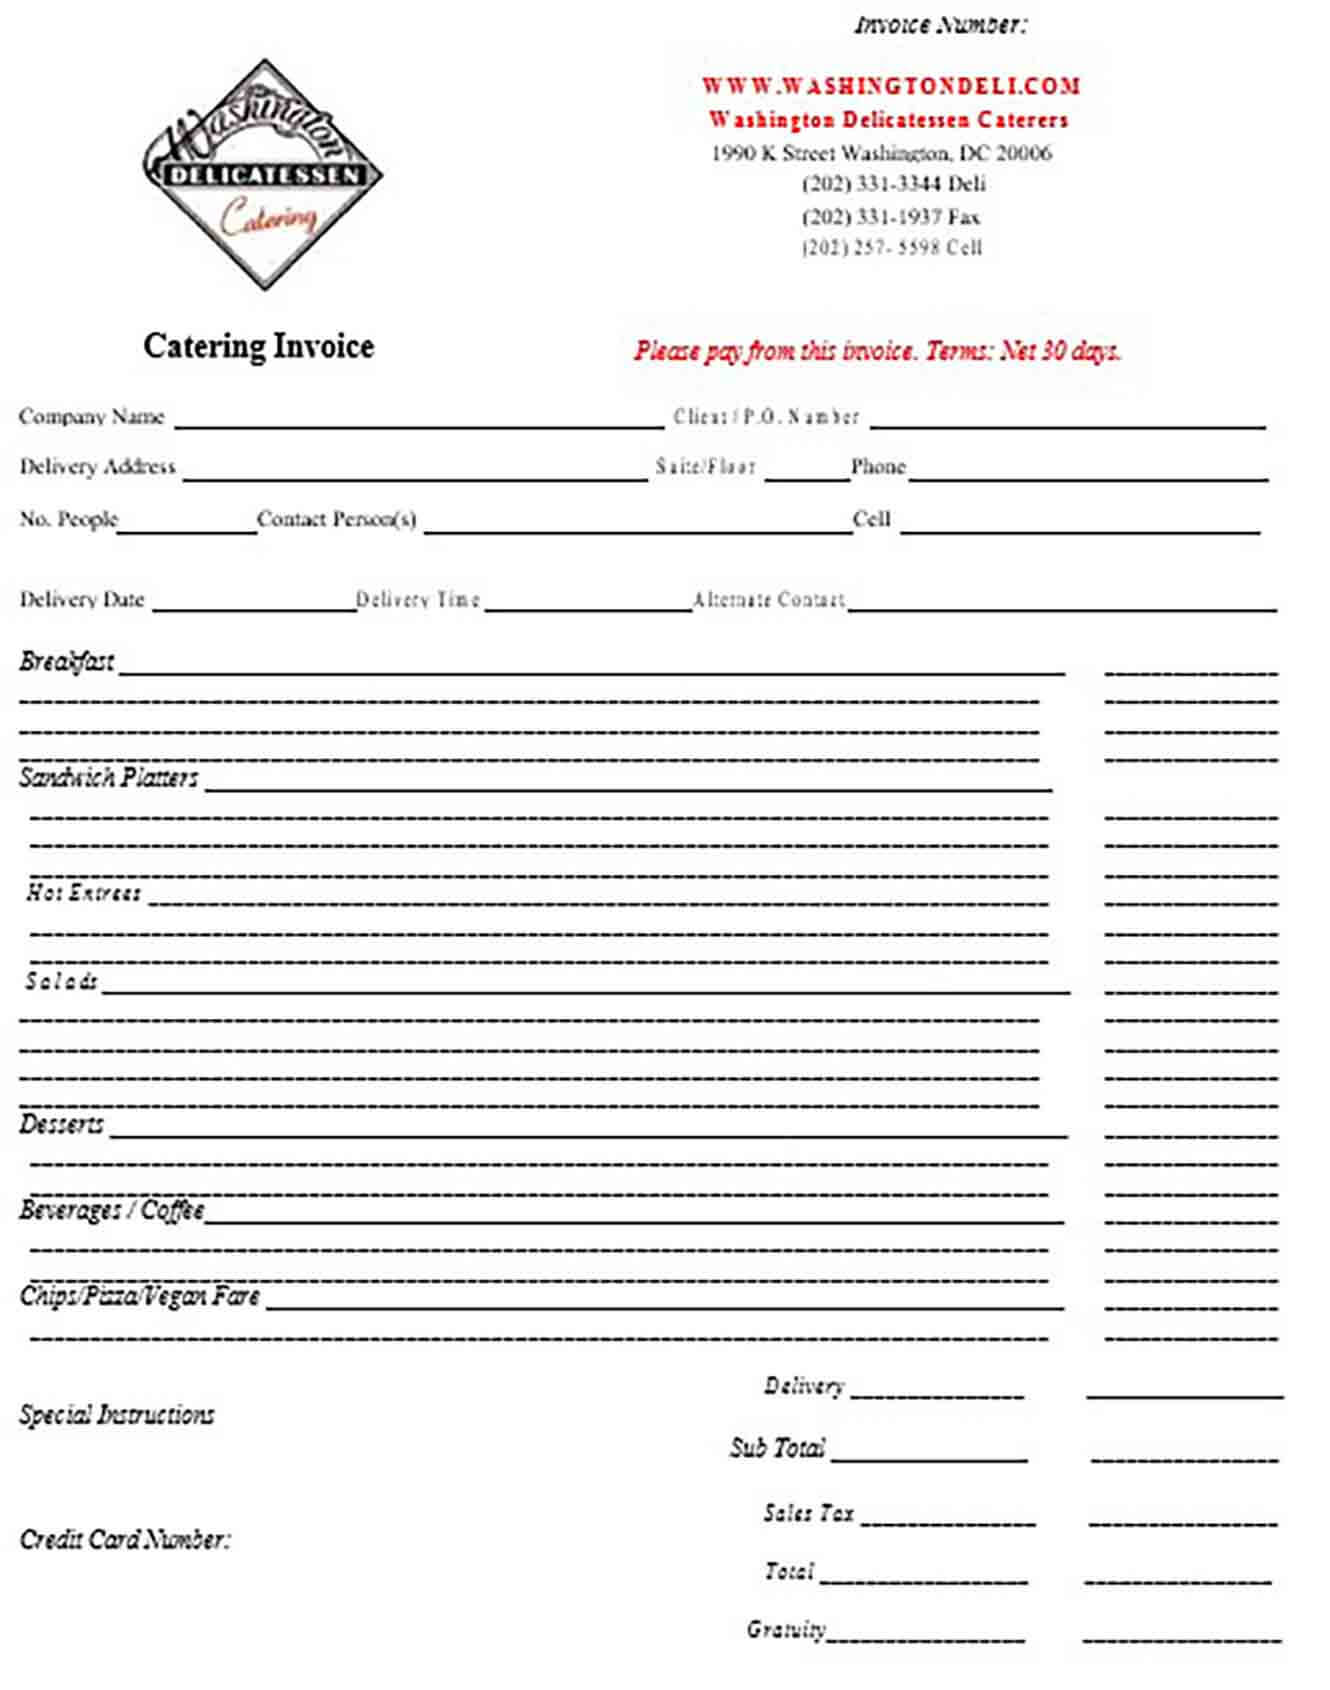 Catering Proposal Cover Letter